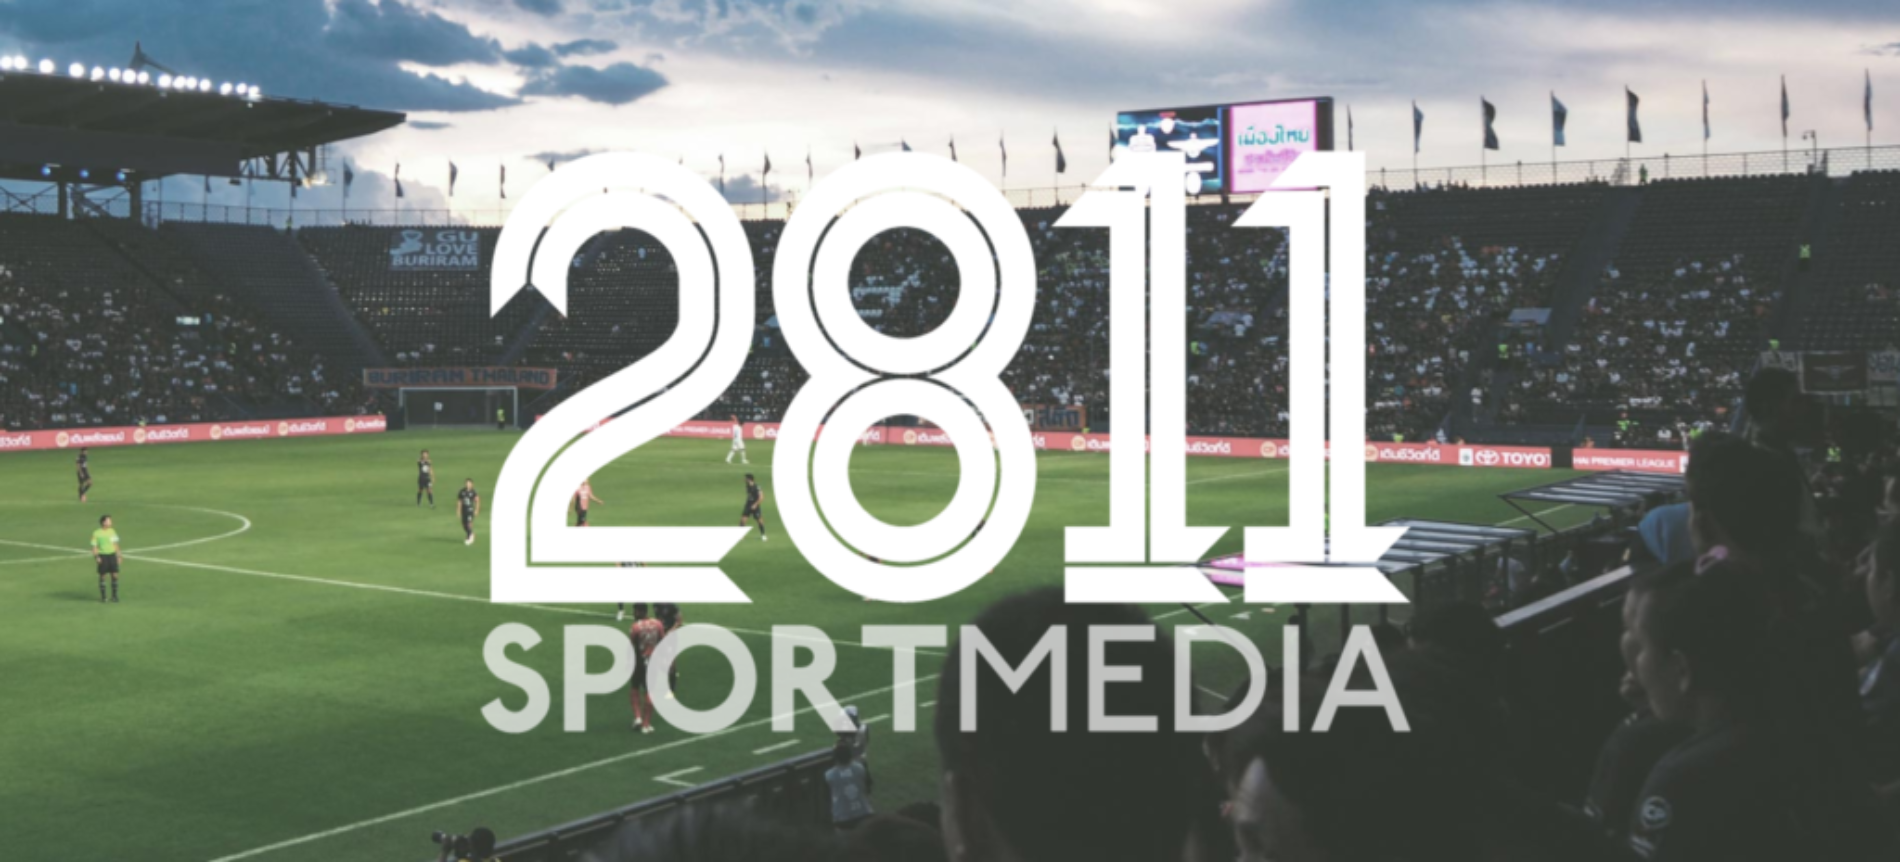 Southport Football Club are delighted to announce that we have strengthened our existing Commercial & Corporate team, by bringing on board 2811 Sports Media.    2811 Sports Media is owned by David Broadbent.    David has over 10 Years Experience in Sports Marketing, particularly football, and has...